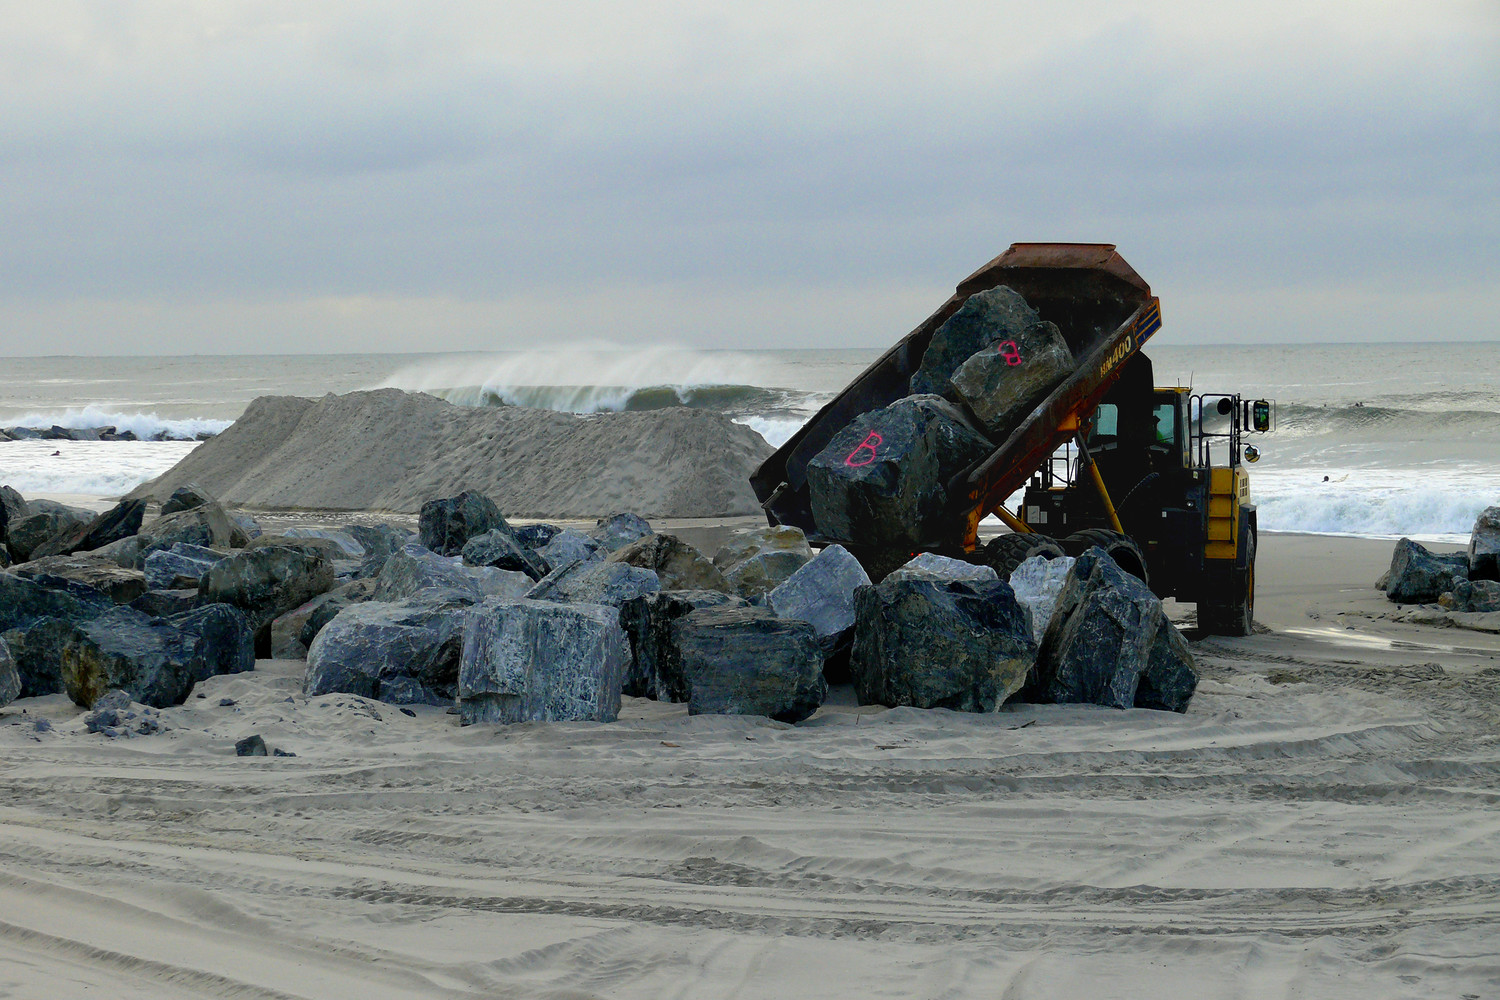 Long Beach's public works crews cleared storm drains and moved sand and boulders along the beach to close off and secure openings in between dunes and along the boardwalk ahead of the storm.